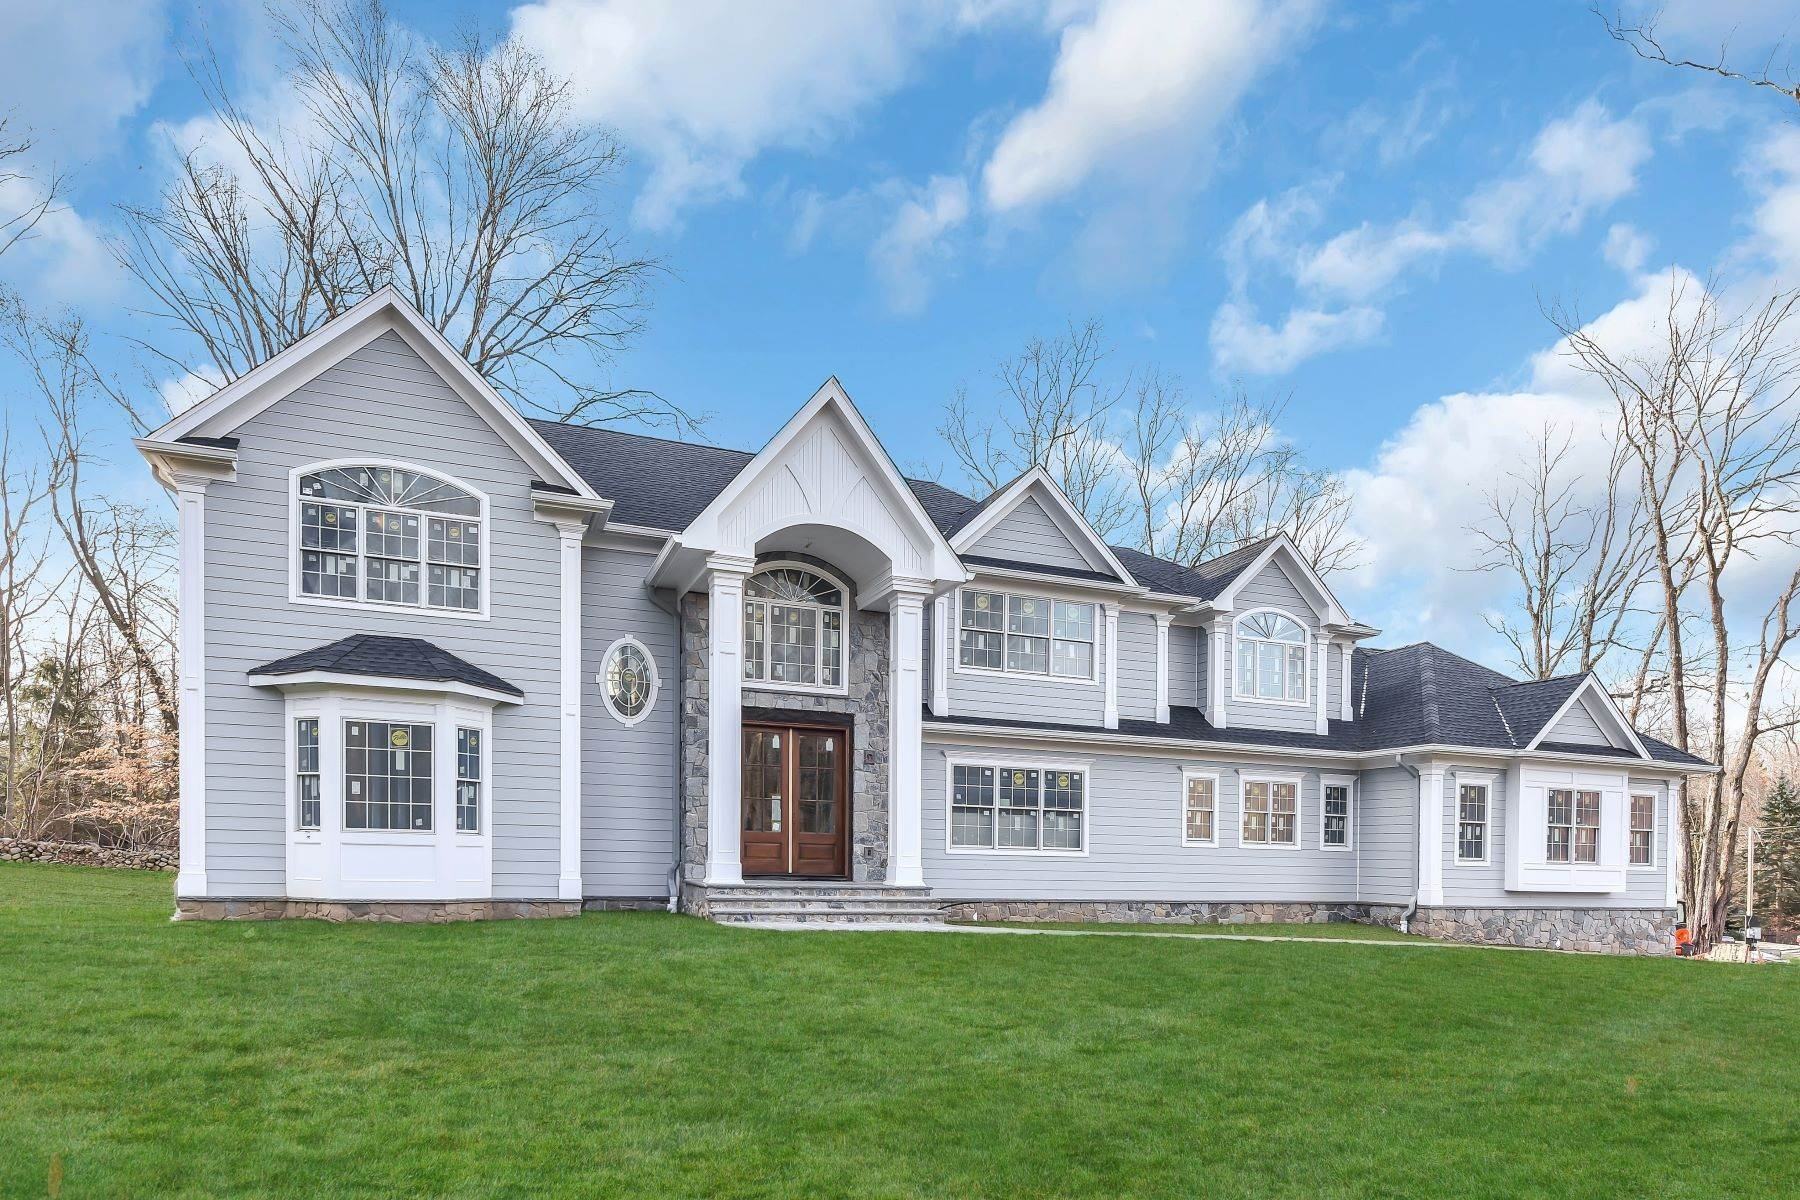 Single Family Homes for Sale at FABULOUS NEW CONSTRUCTION 24 Robin Ridge Rd Upper Saddle River, New Jersey 07458 United States